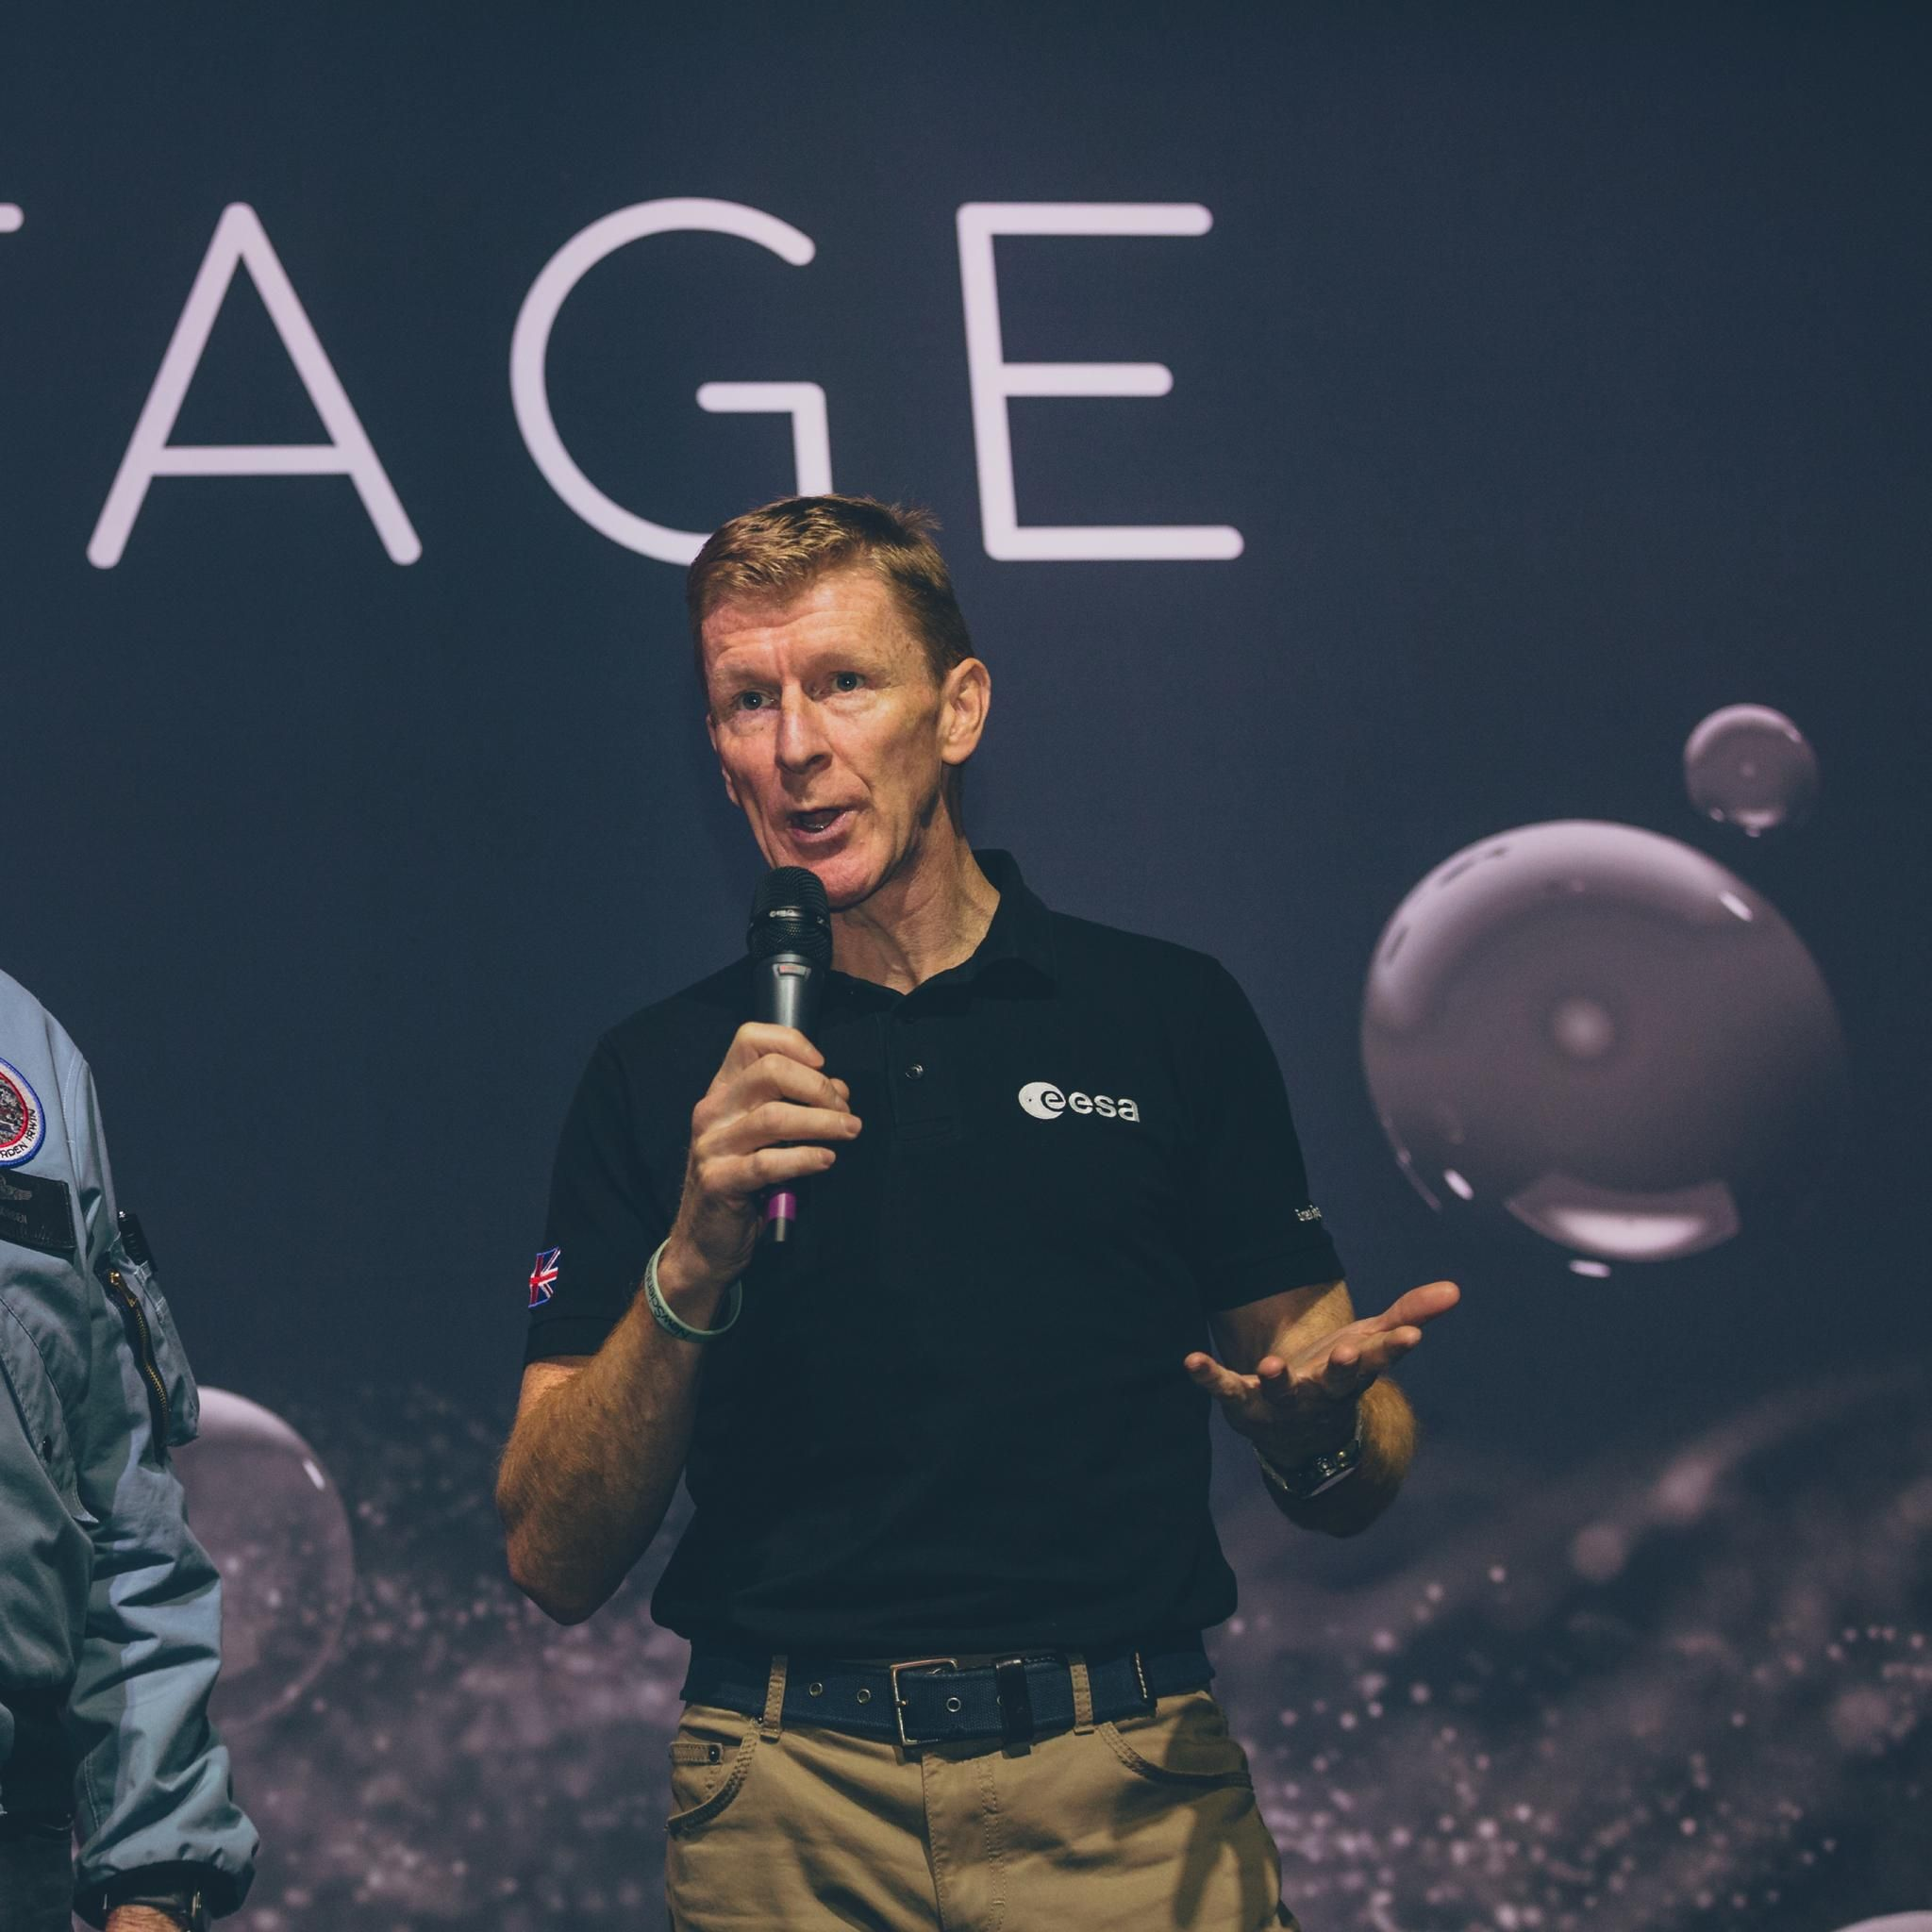 Tim Peake's return to New Scientist Live 2019